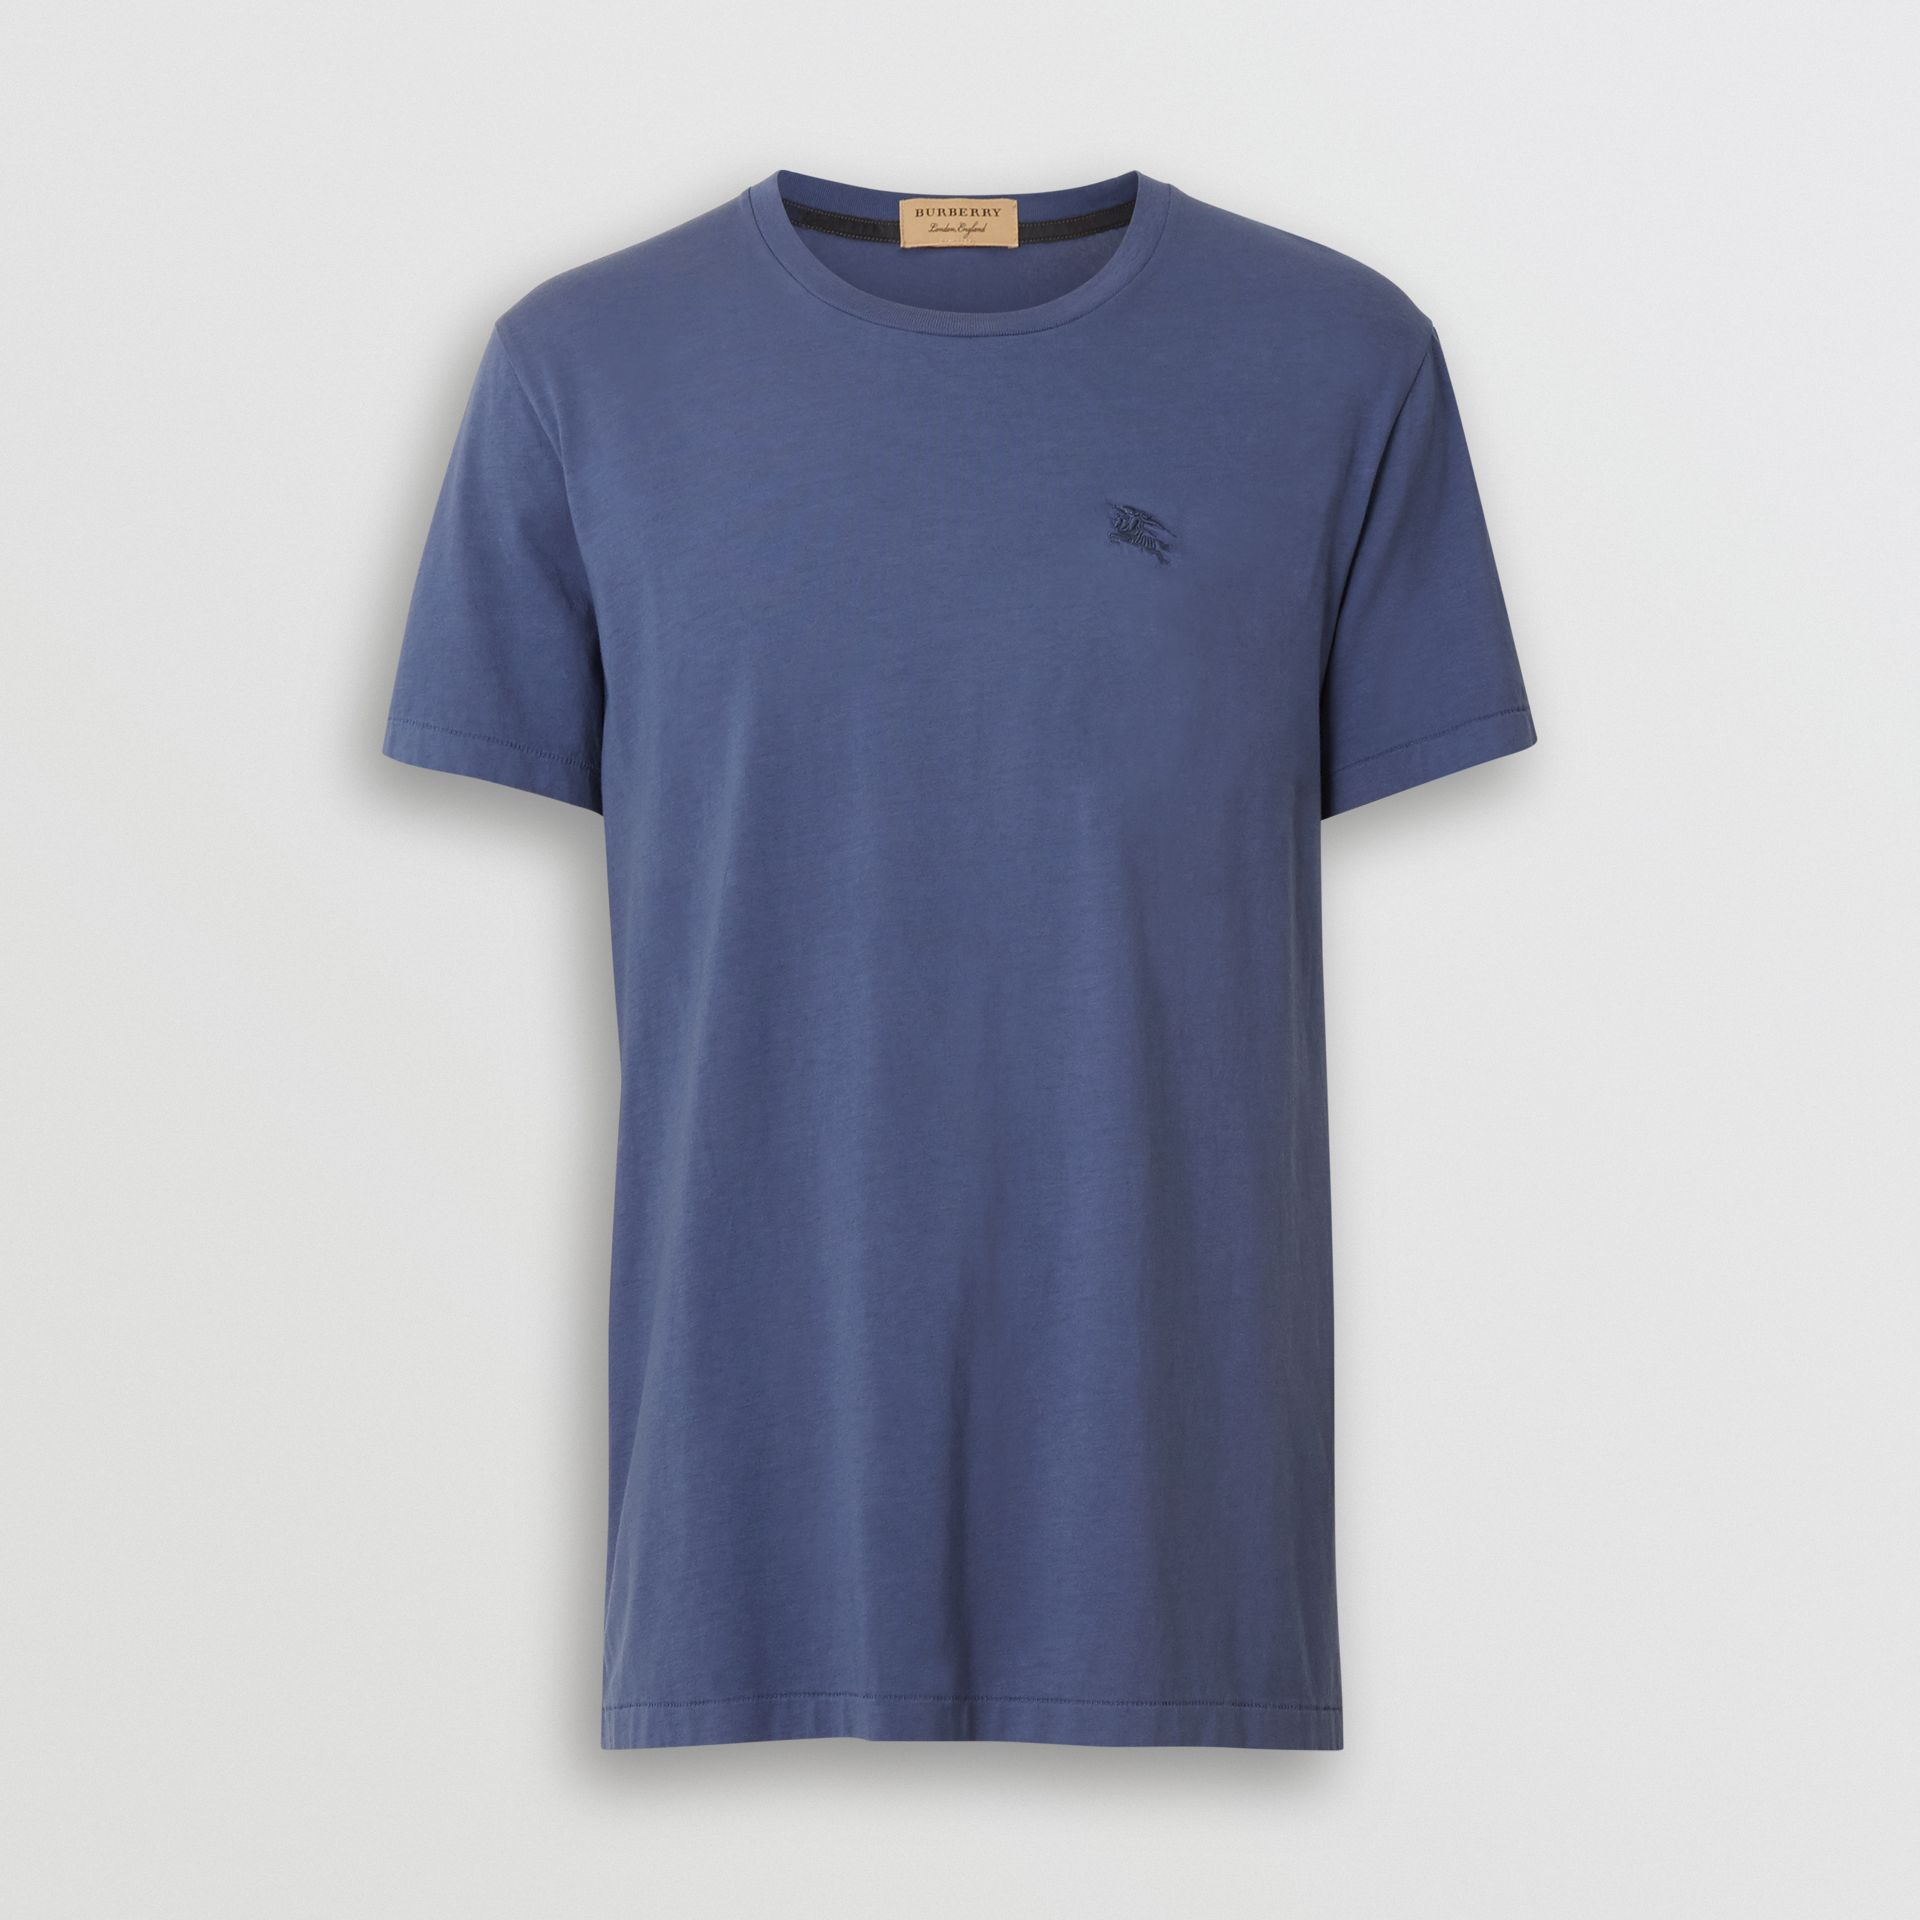 Cotton T-shirt in Pebble Blue - Men | Burberry - gallery image 3